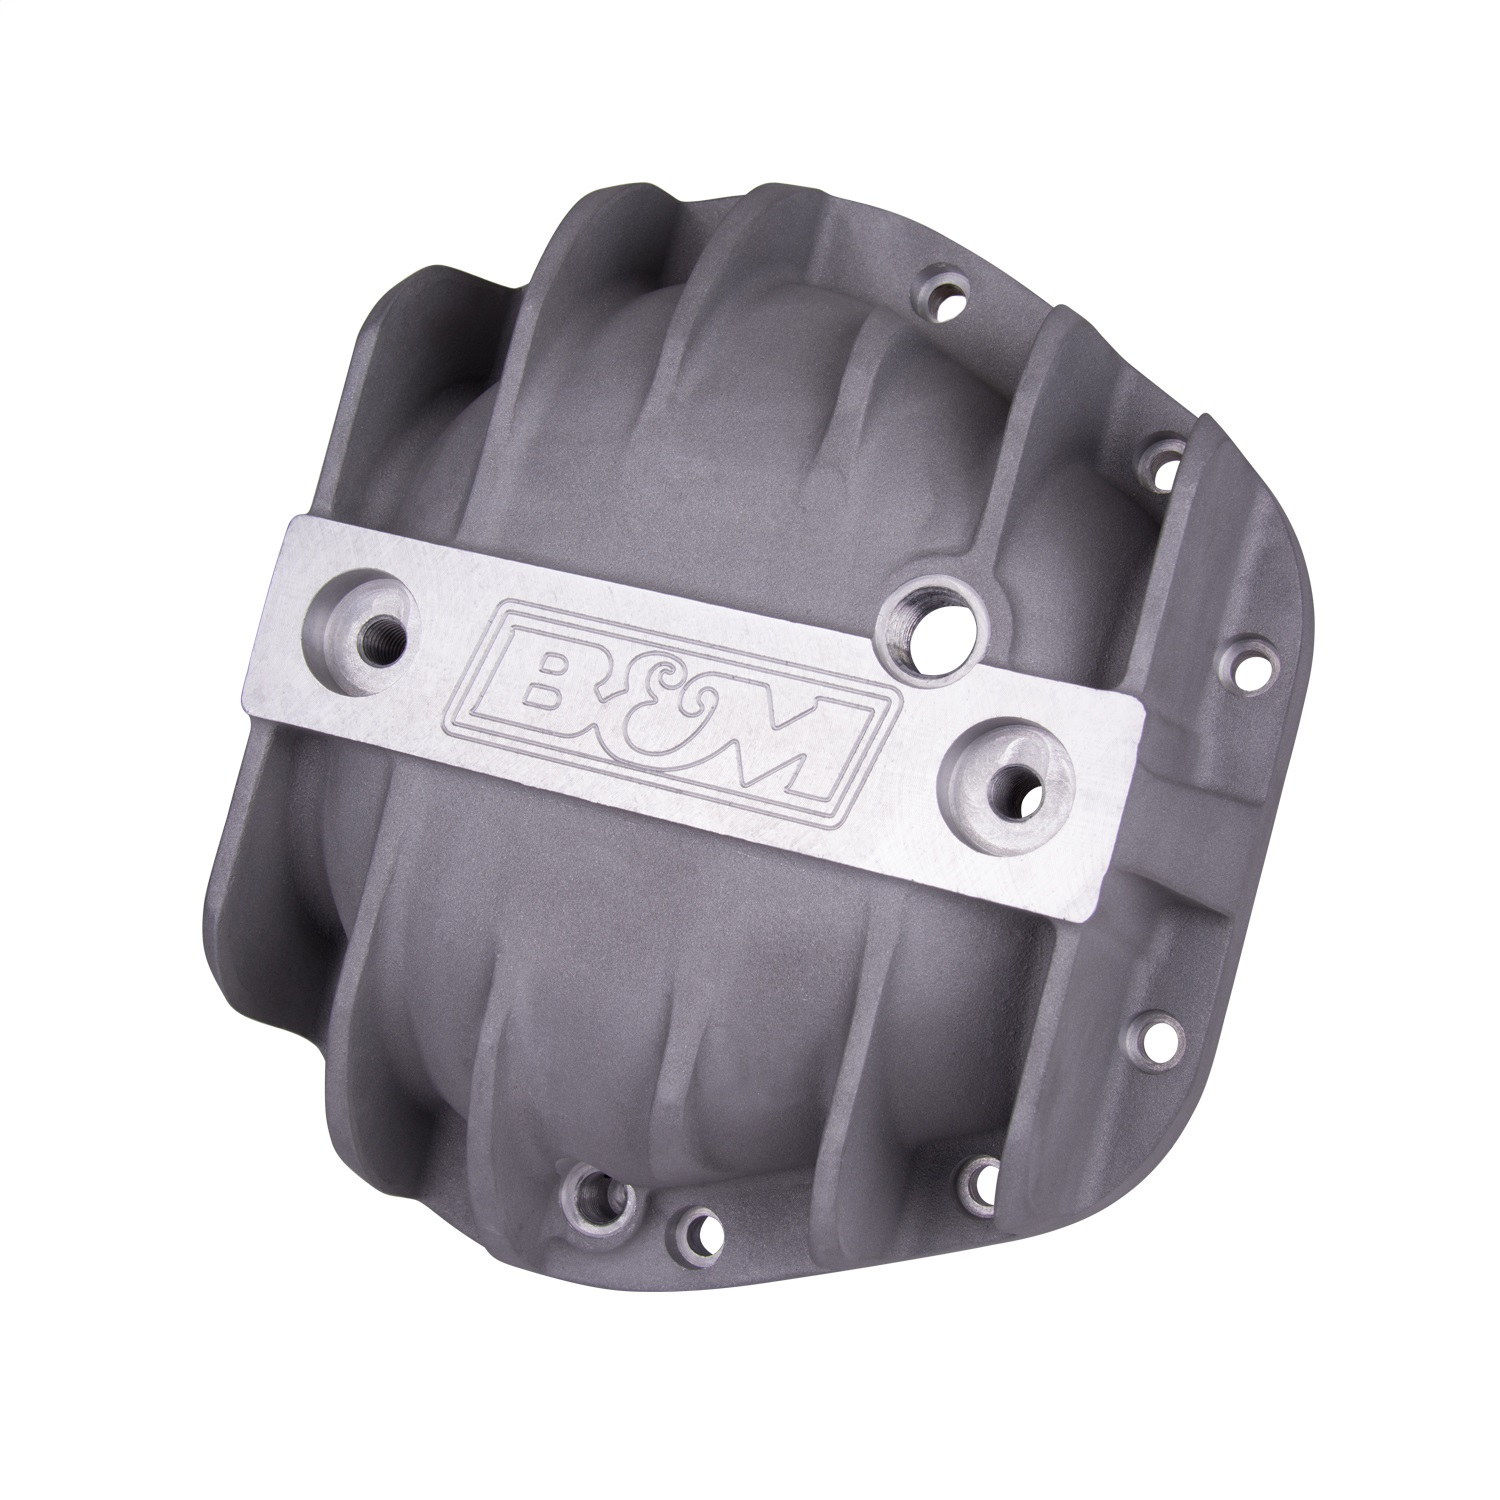 B&M 10312 Differential Cover